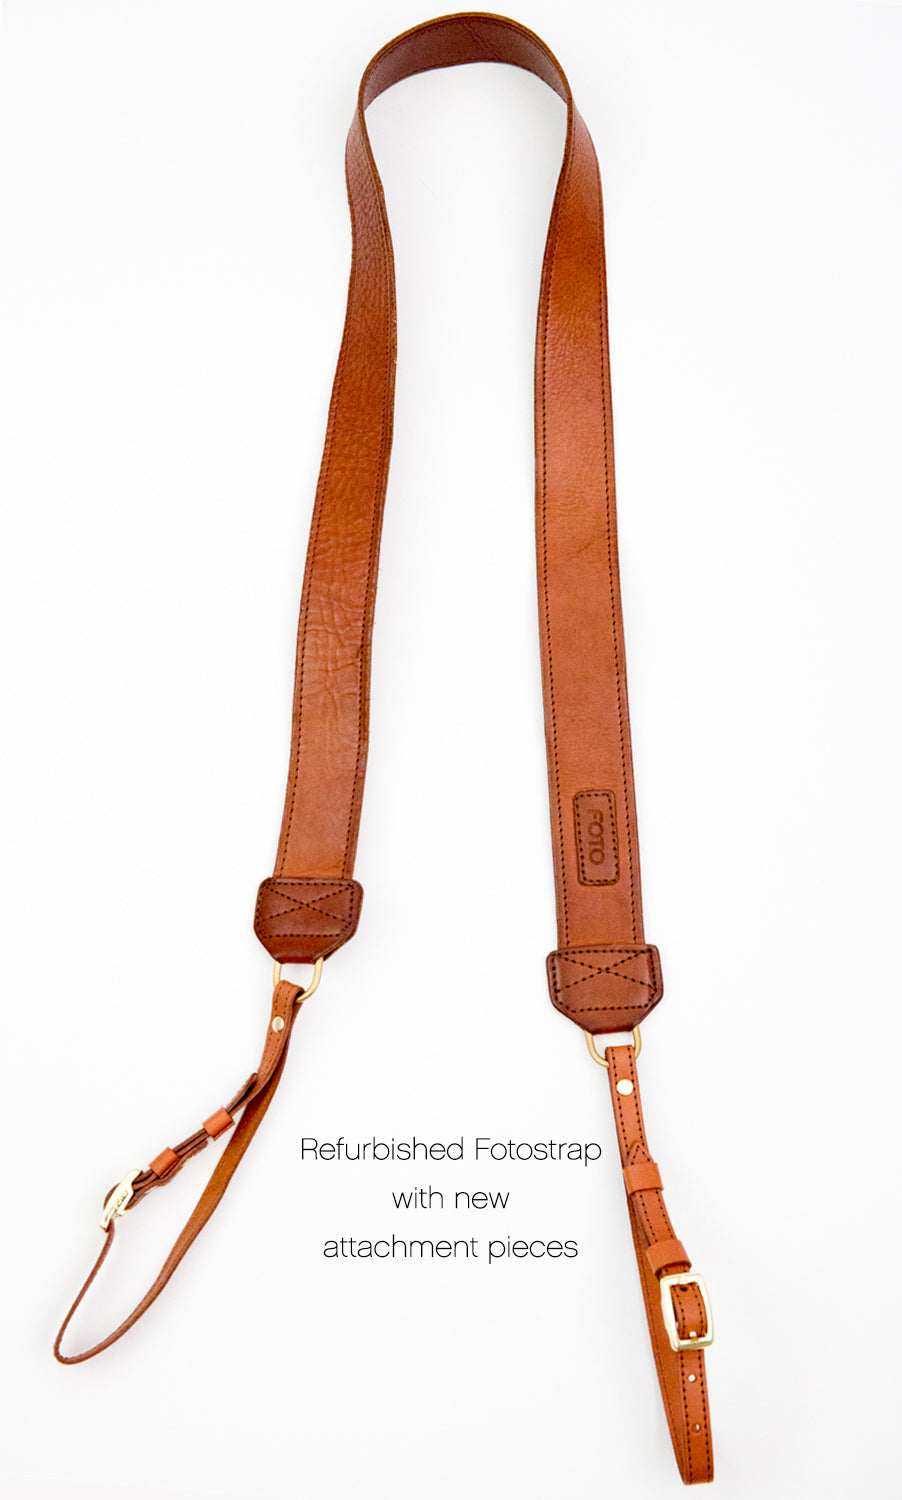 Fotostrap Refurbishment Program